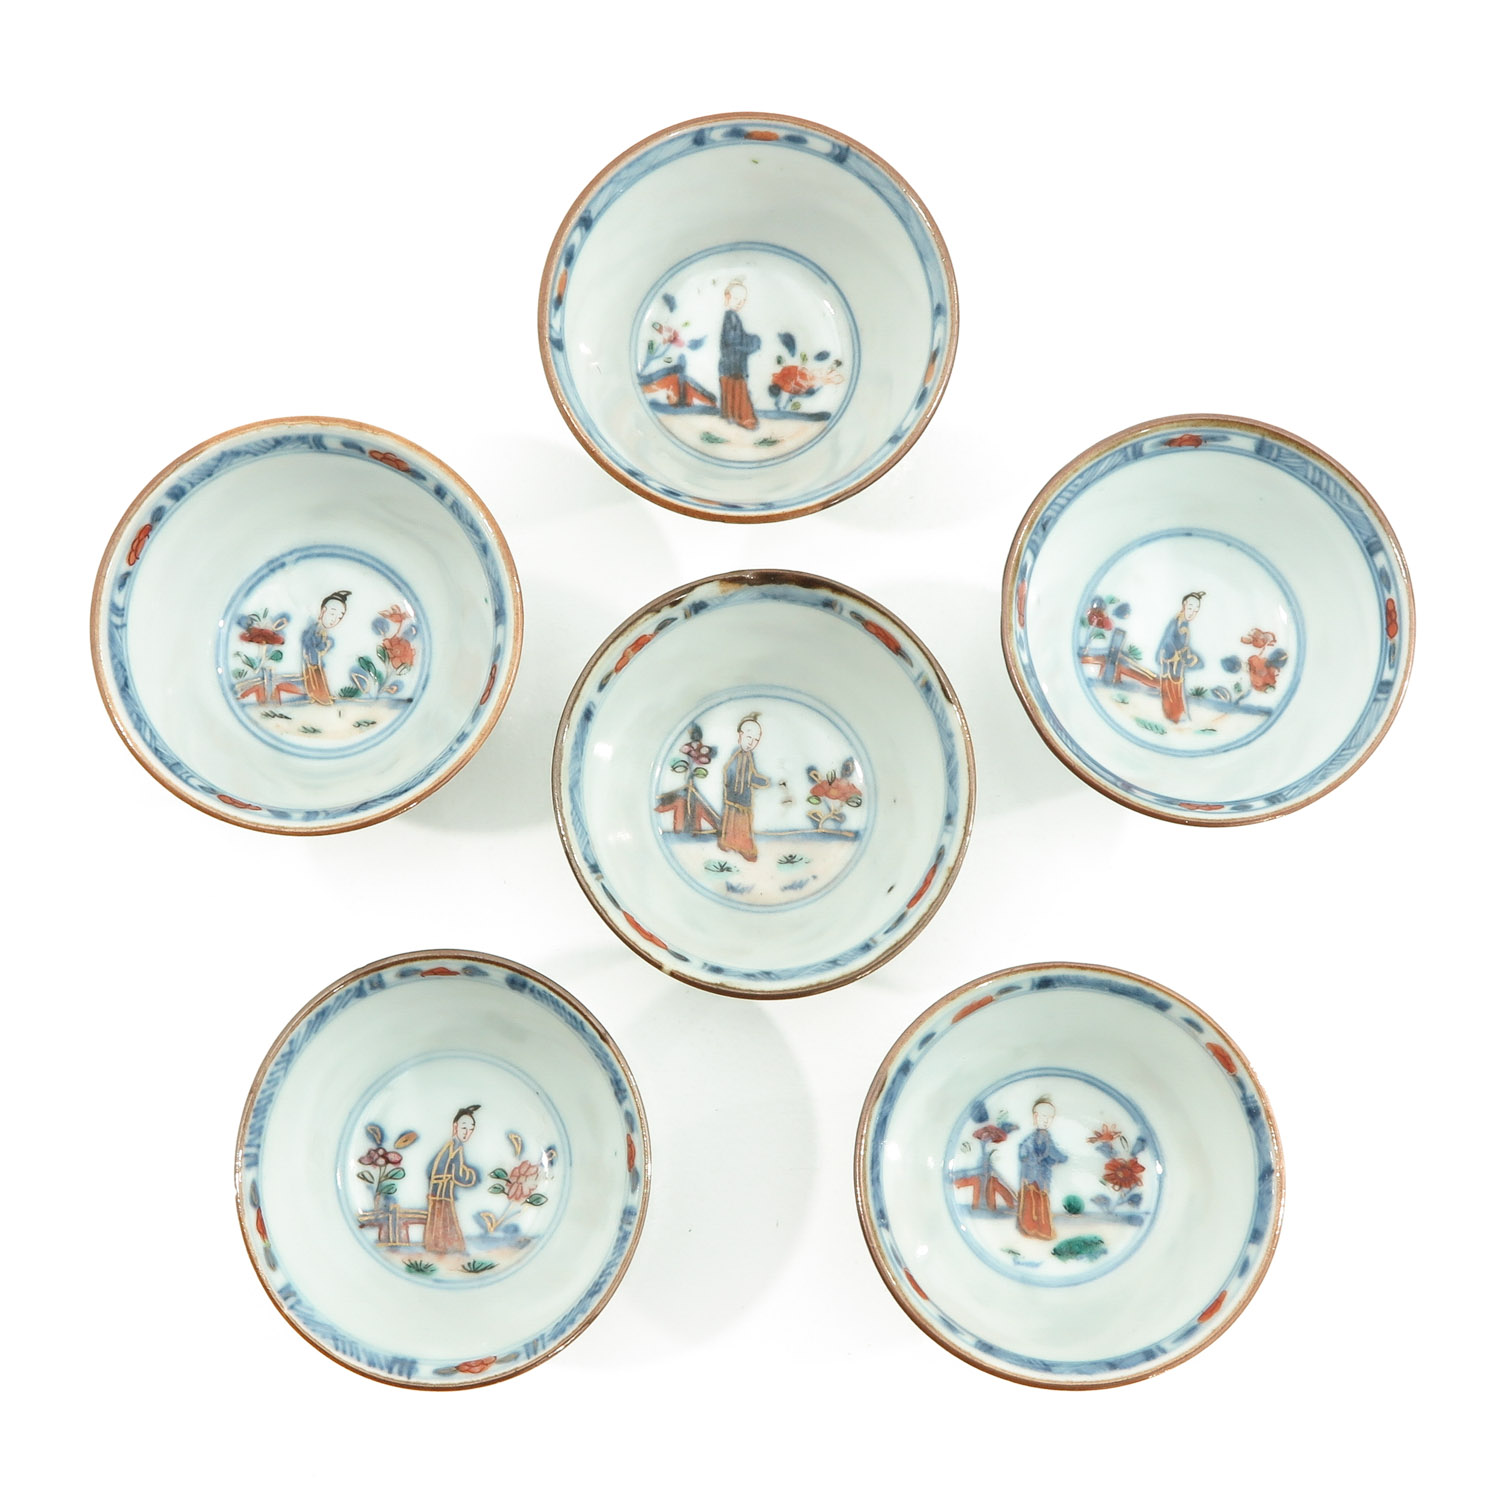 A Set of 6 Cups and Saucers - Image 5 of 10